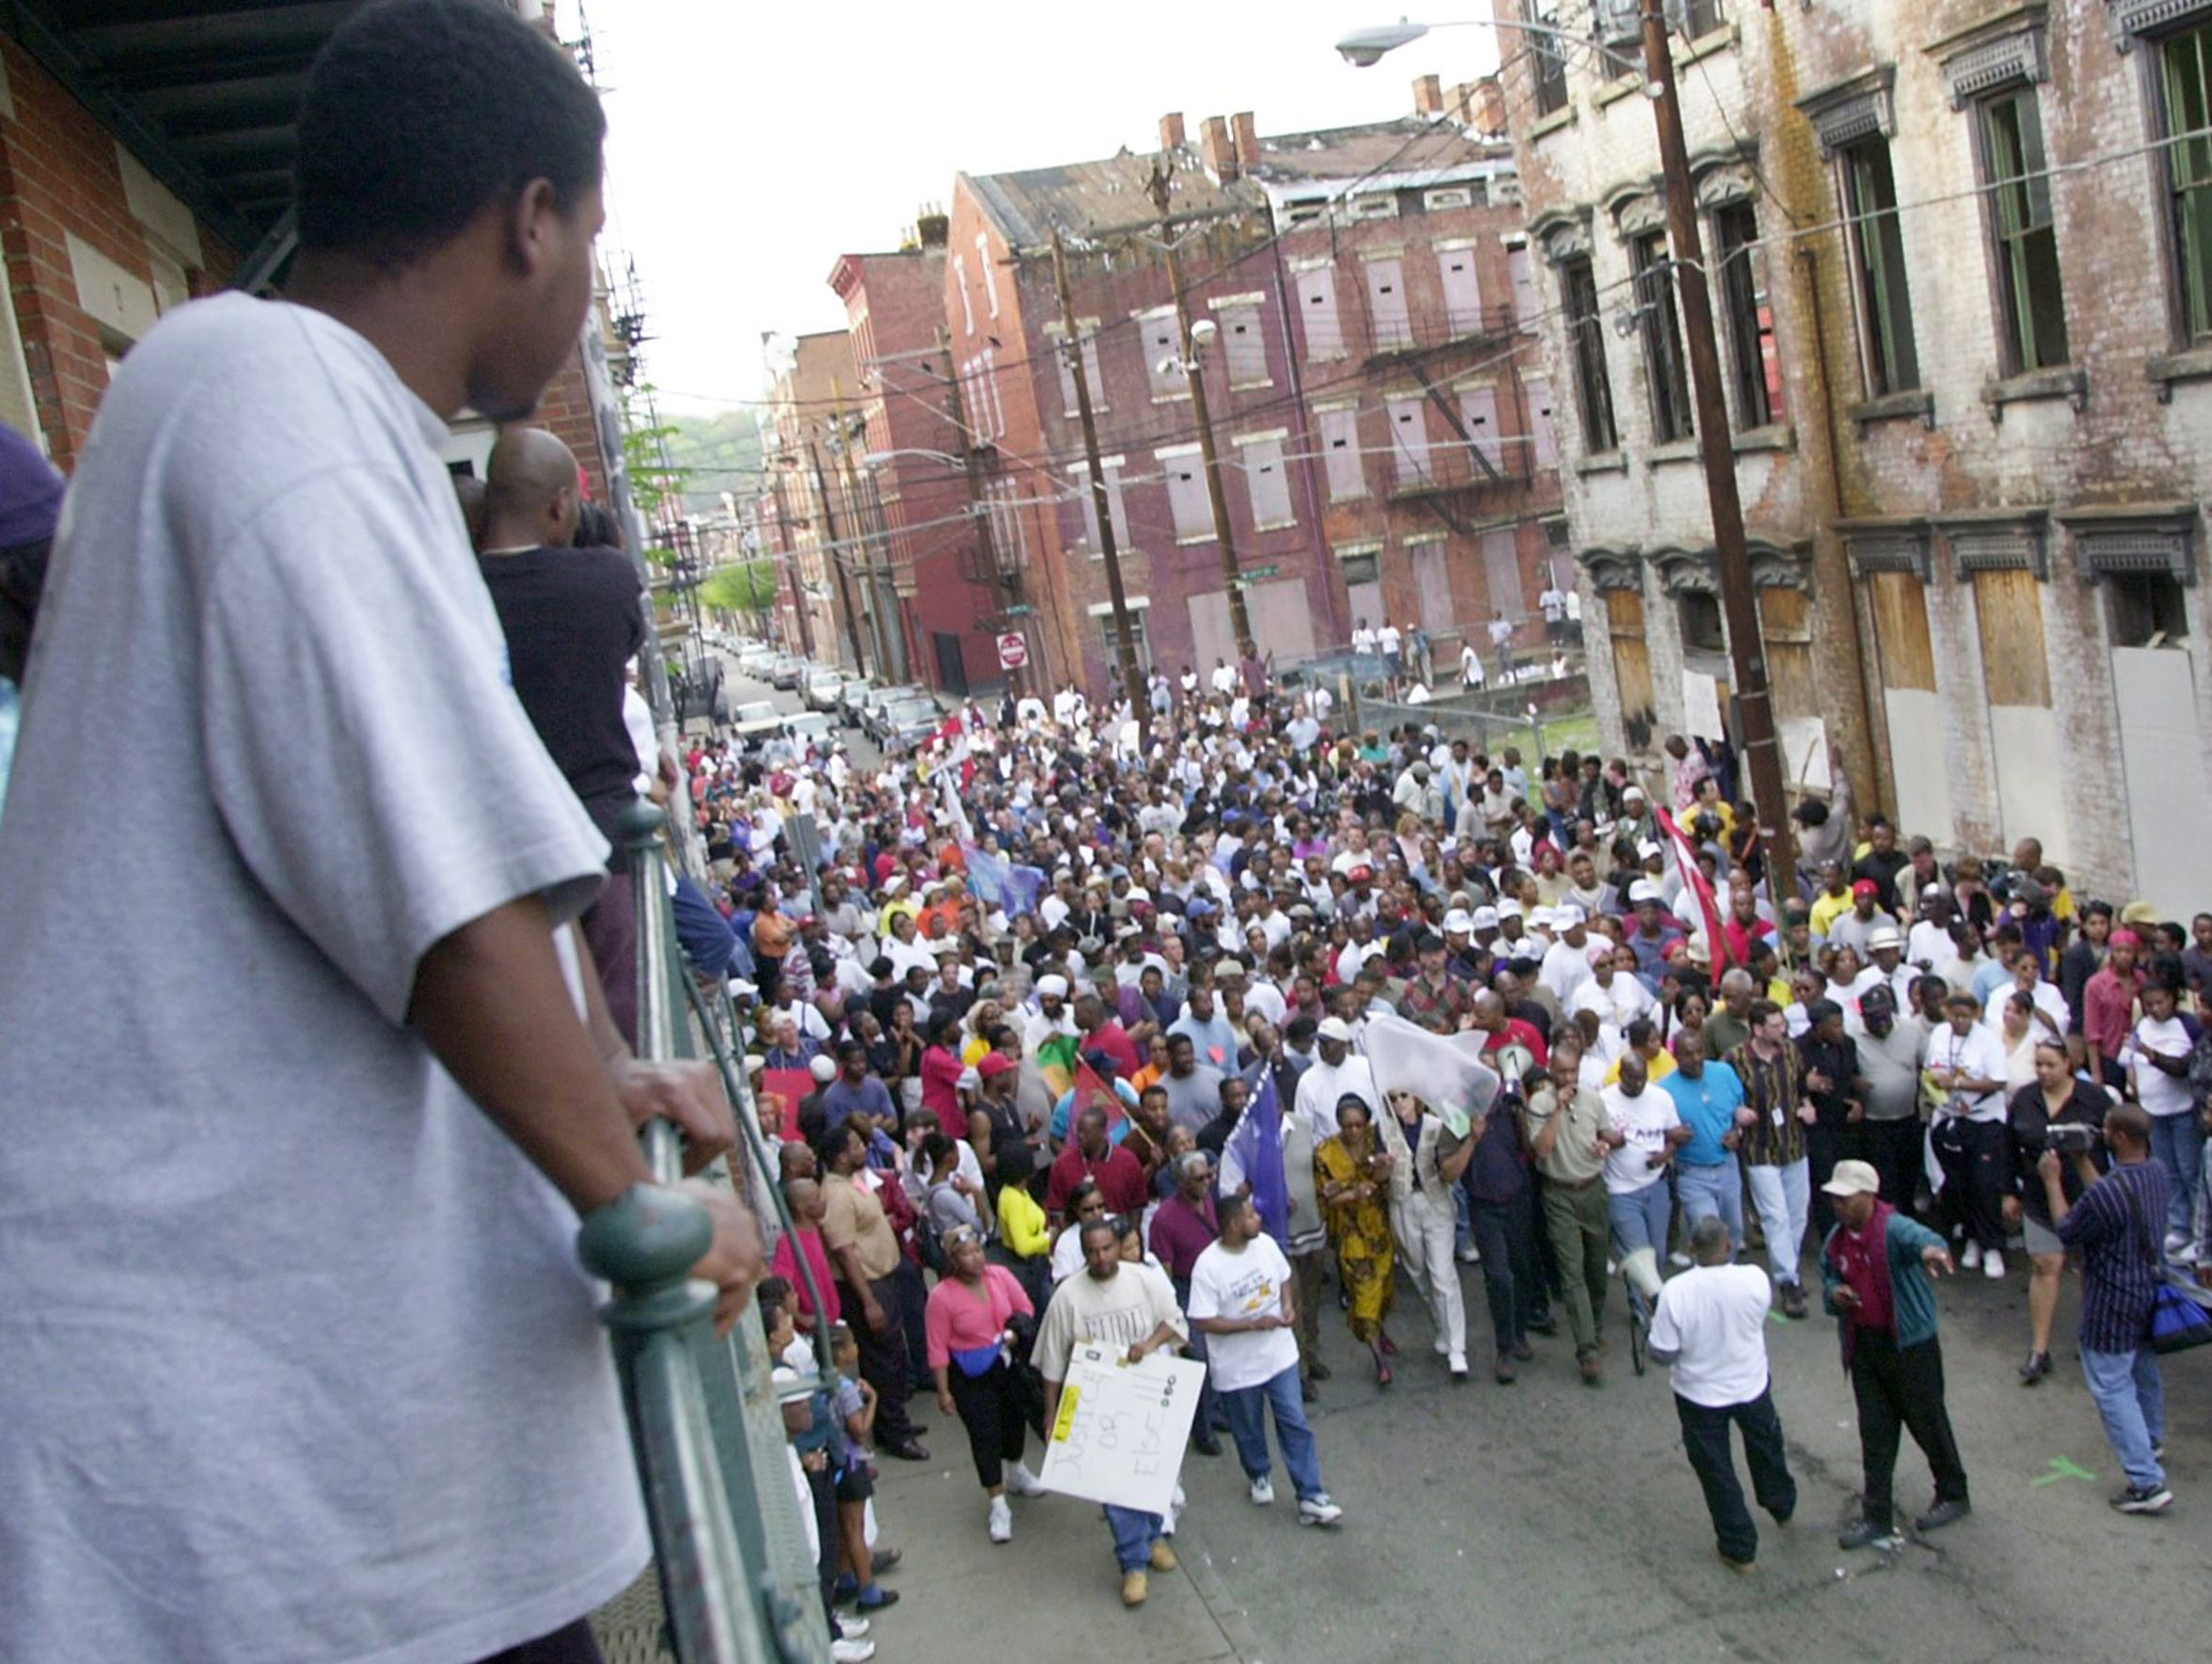 Marchers proceed along Republic Street at 13th street